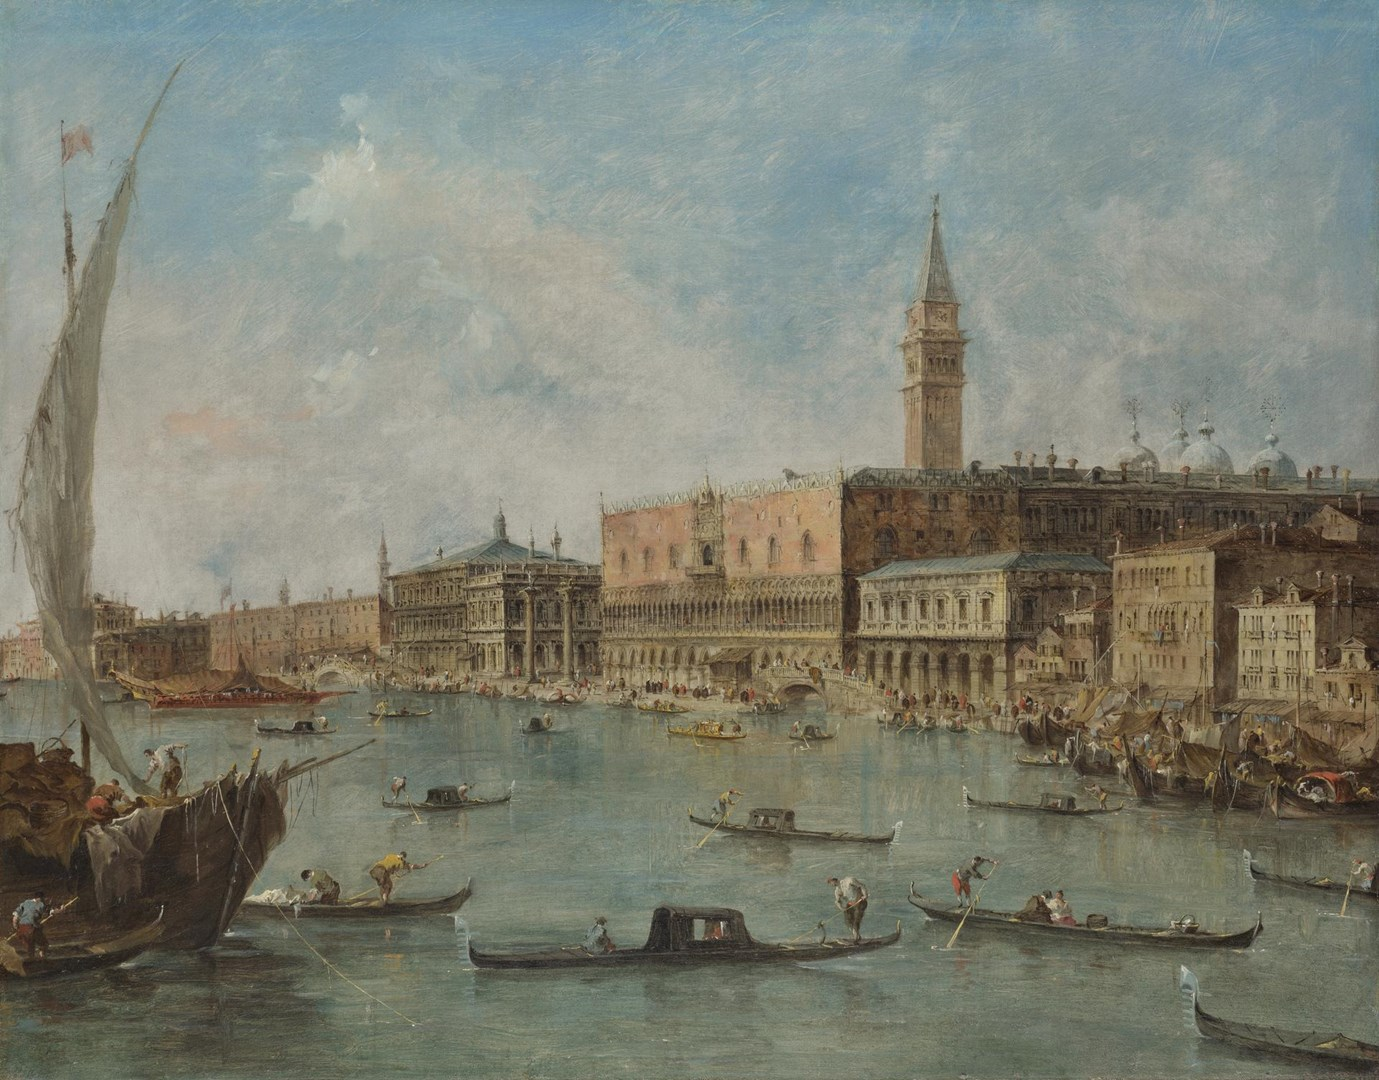 Venice: The Doge's Palace and the Molo by Francesco Guardi